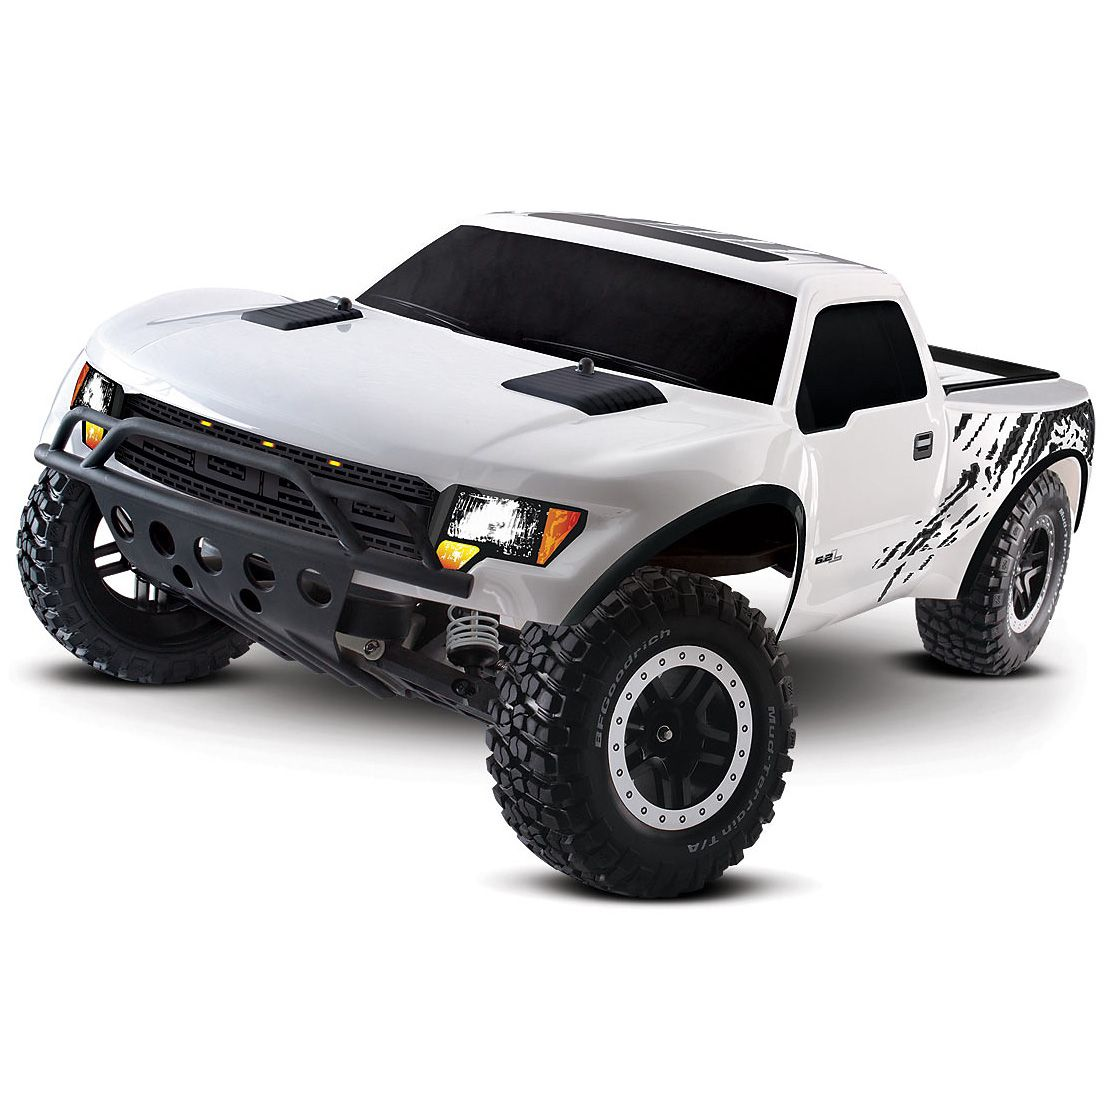 Ford raptor remote control car white purpose built by the ford specialty vehicle